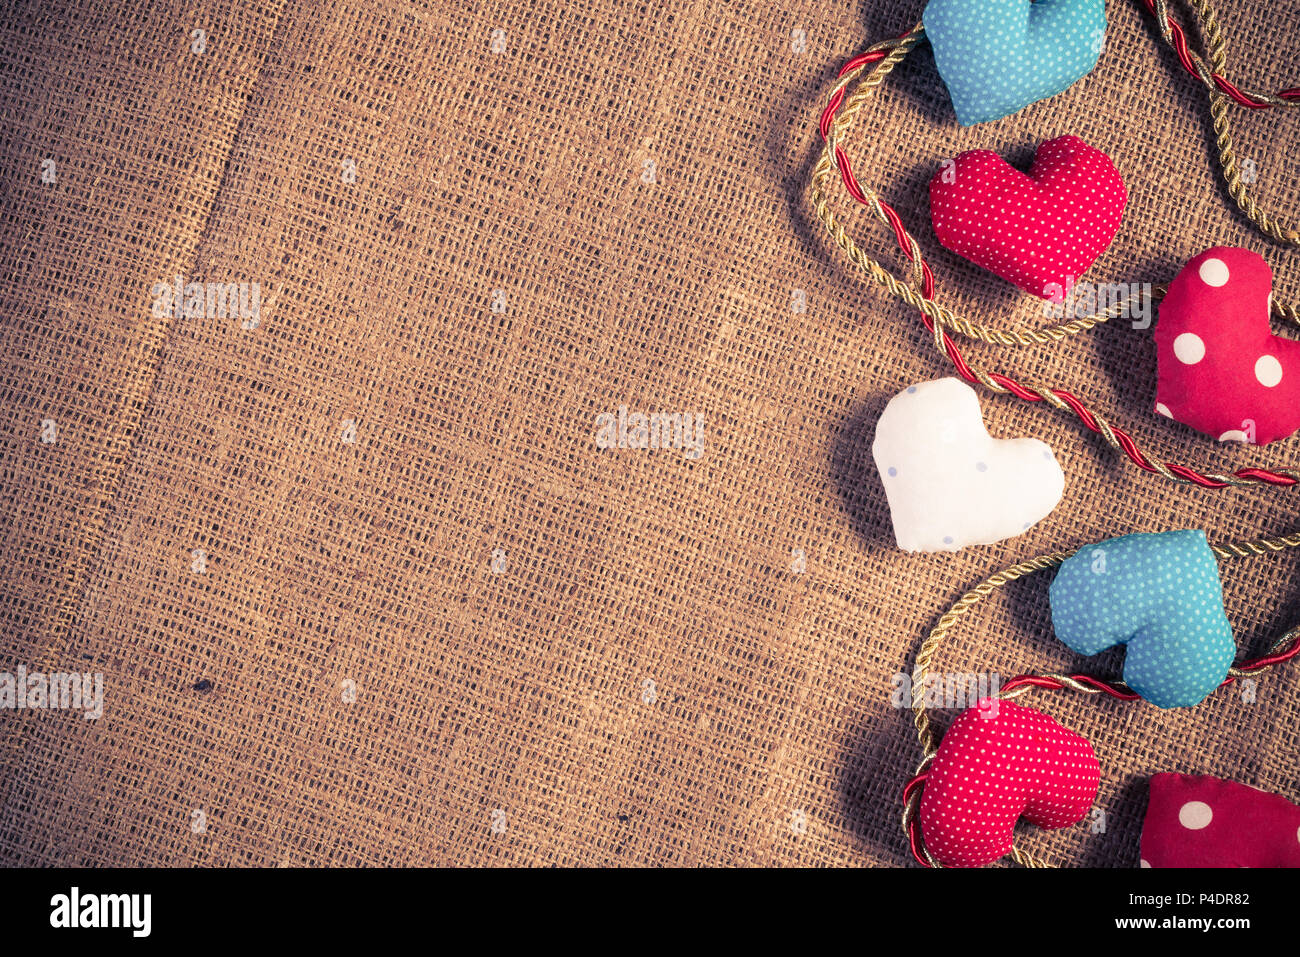 Decoration invite stock photos decoration invite stock images alamy do it yourself postcard stock image solutioingenieria Images